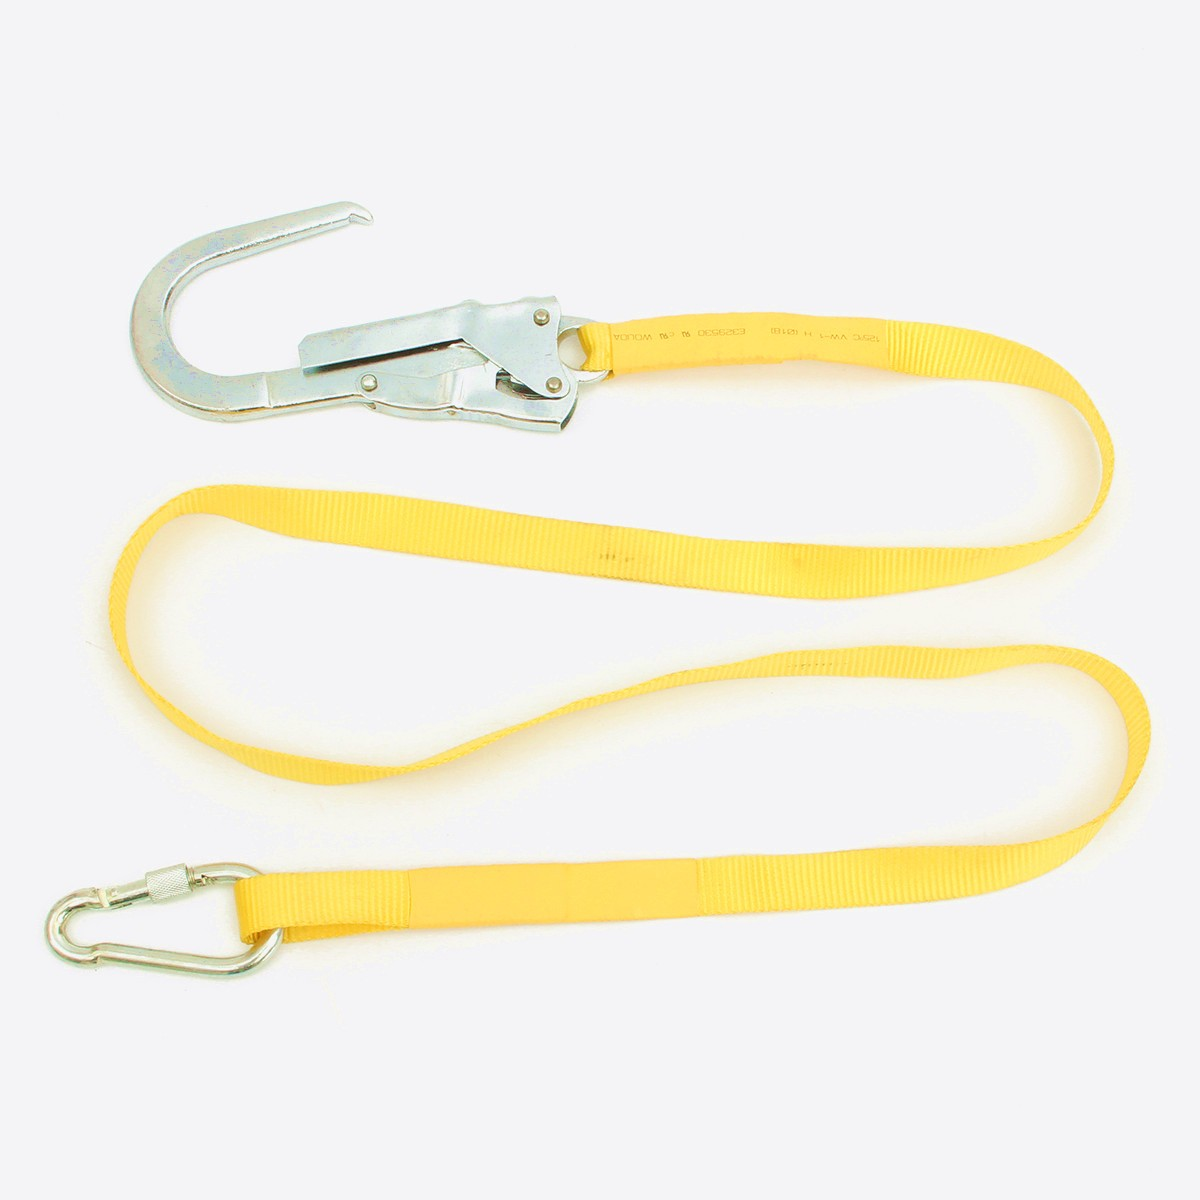 NEW Outdoor Climbing Safety Harness Lanyard Belt With Carabiner Buckle Protection Workplace Safety Harness new outdoor climbing climb mountain rope safety waist belt protection equipment workplace safety harness